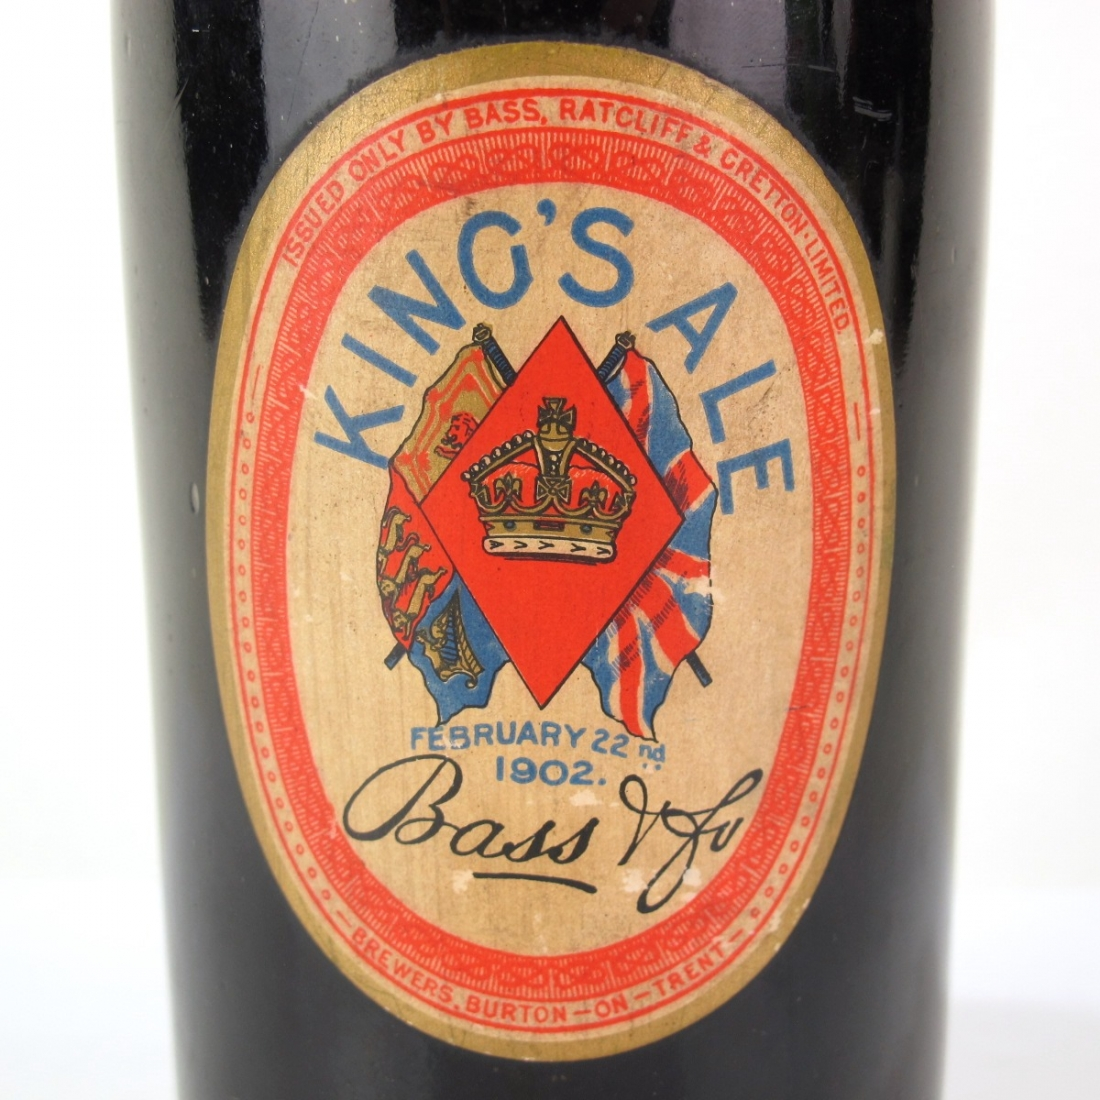 Bass King's Ale 1902